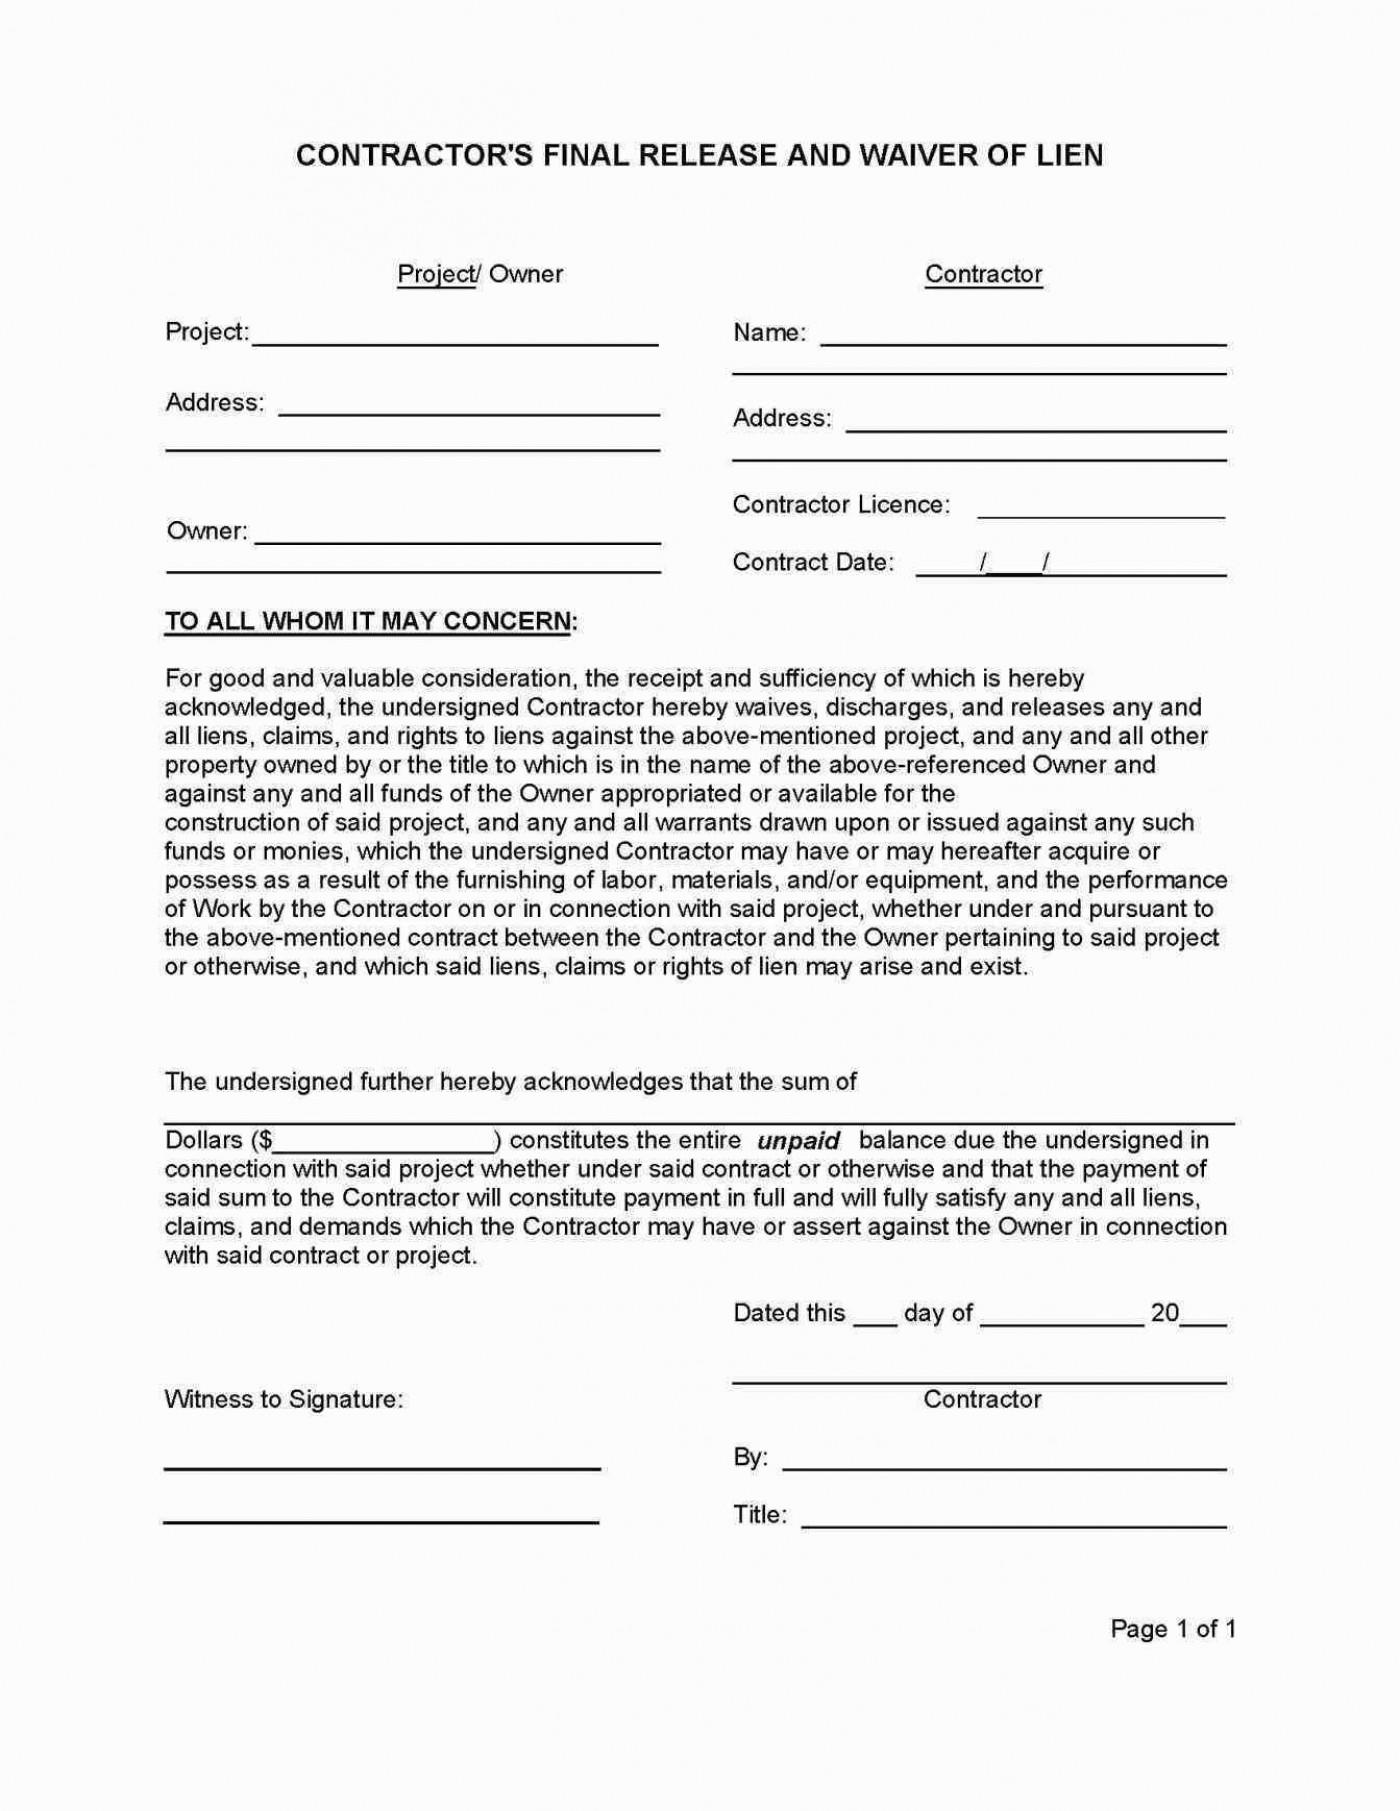 Qualified Domestic Relations Order Form California